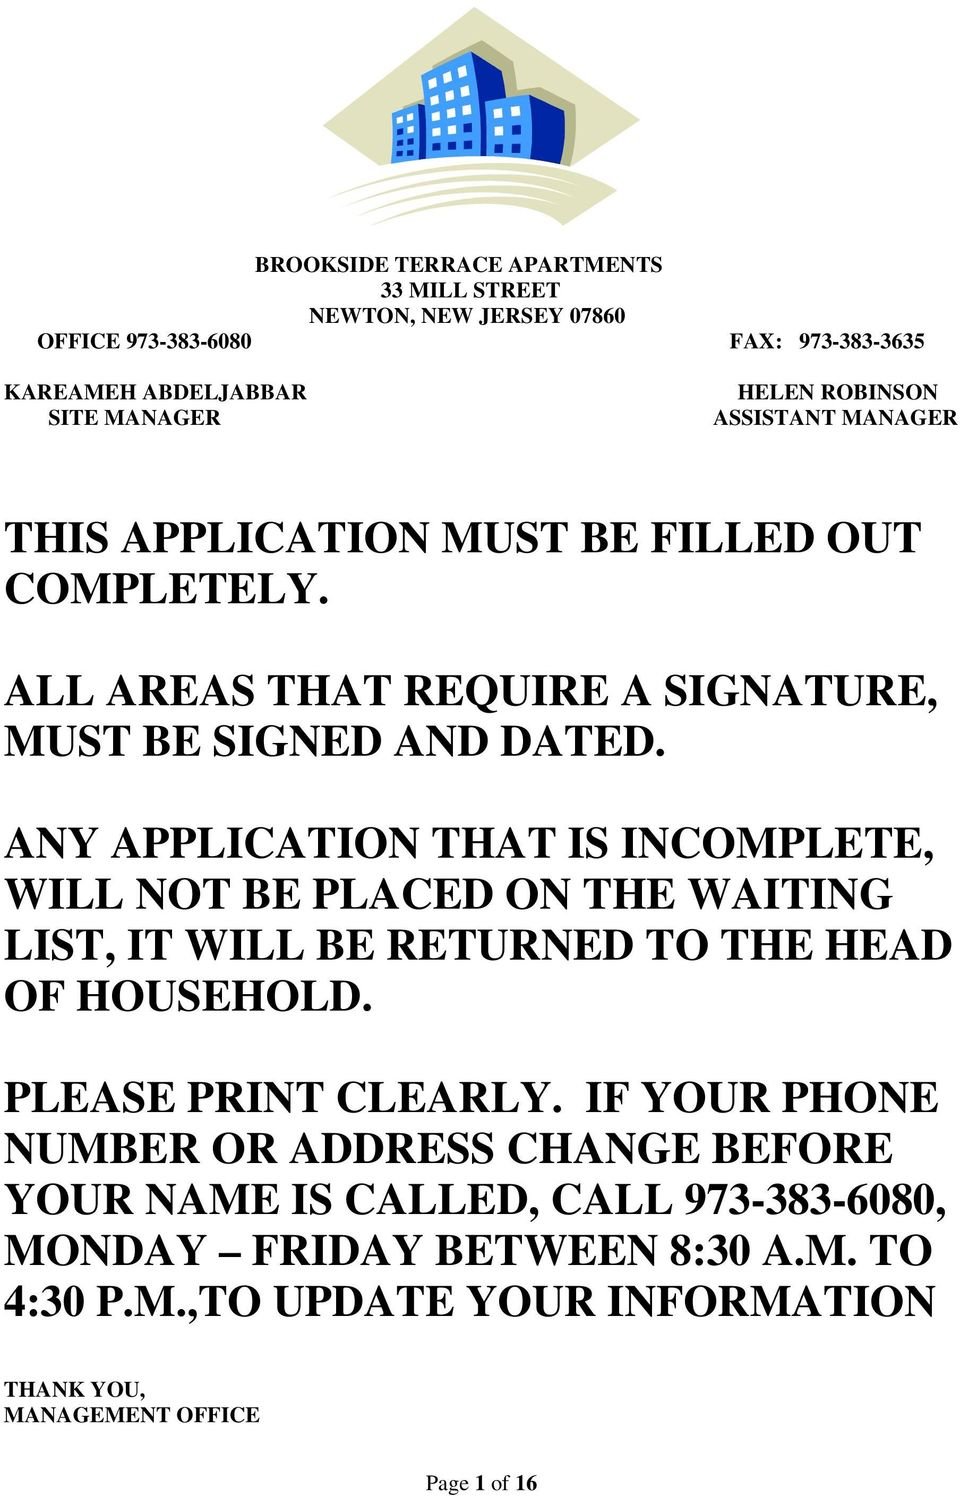 ANY APPLICATION THAT IS INCOMPLETE, WILL NOT BE PLACED ON THE WAITING LIST, IT WILL BE RETURNED TO THE HEAD OF HOUSEHOLD. PLEASE PRINT CLEARLY.